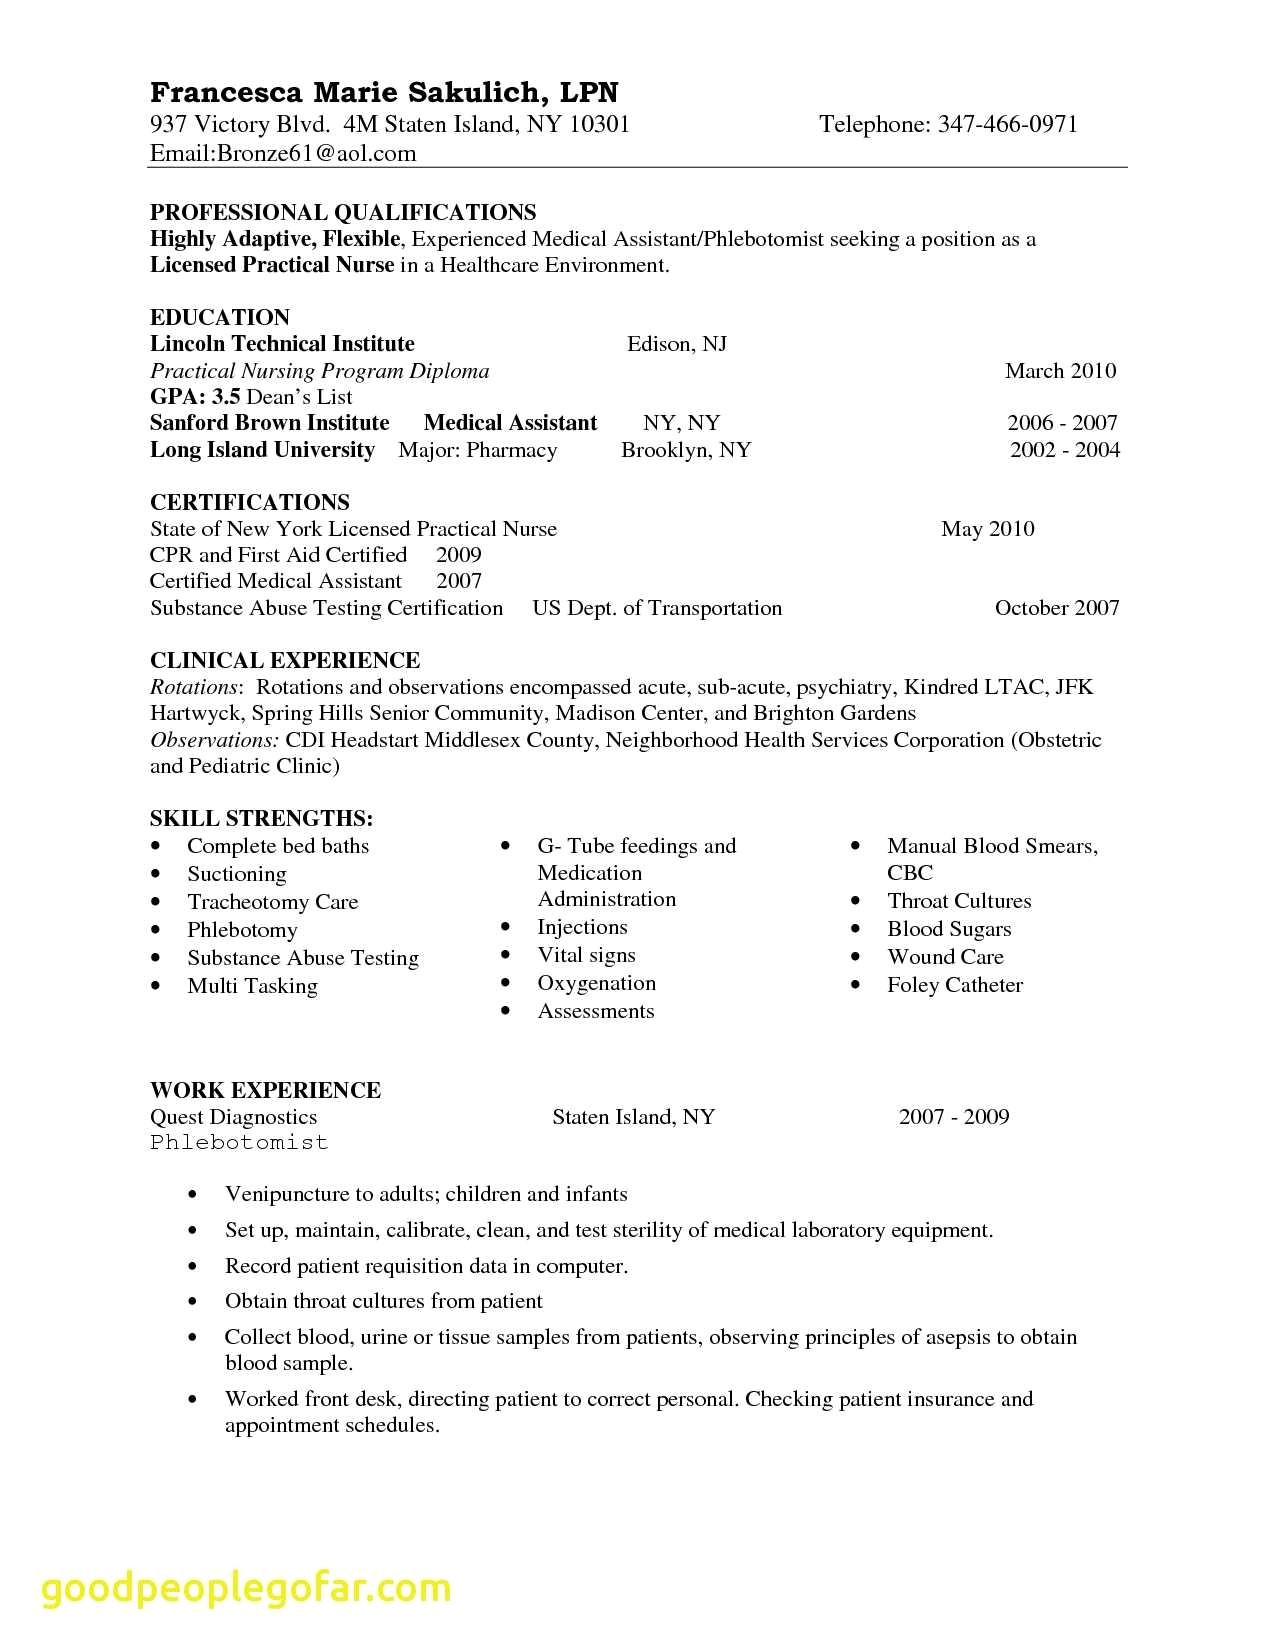 Nursing Resume Objective - 45 Fresh Customer Service Resume Objective